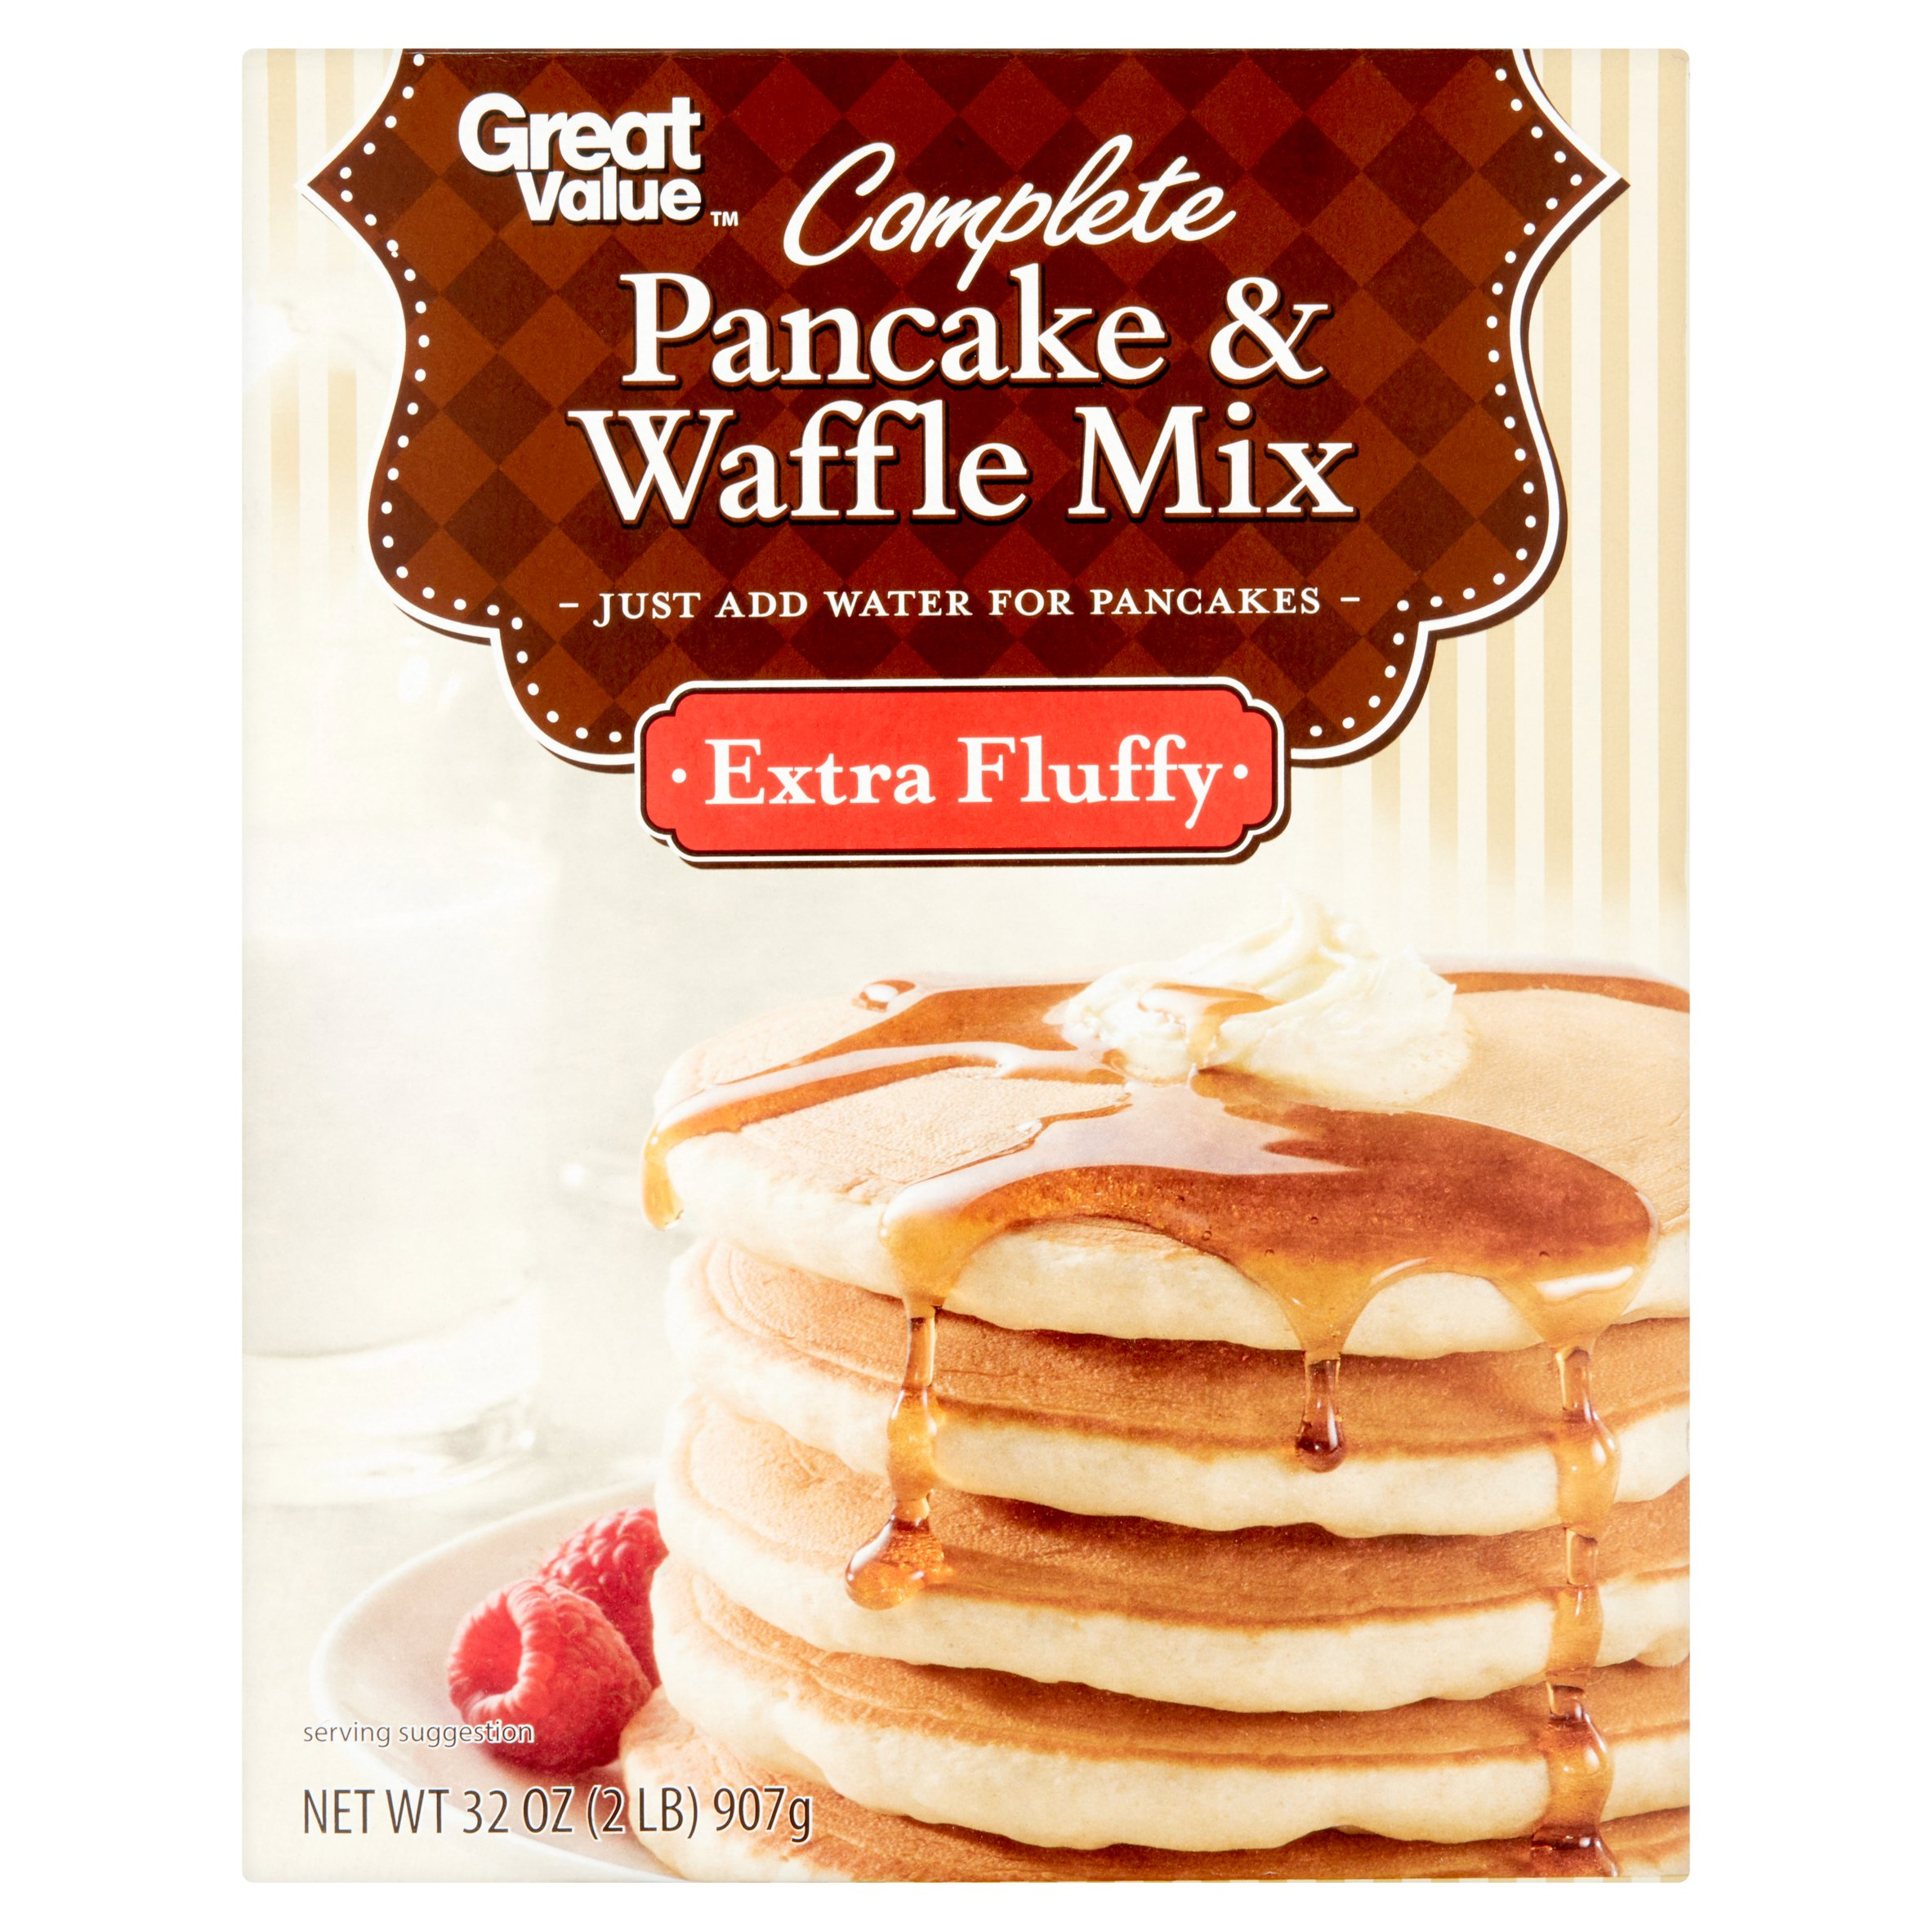 Great Value Complete Pancake & Waffle Mix 32 oz by Wal-Mart Stores, Inc.